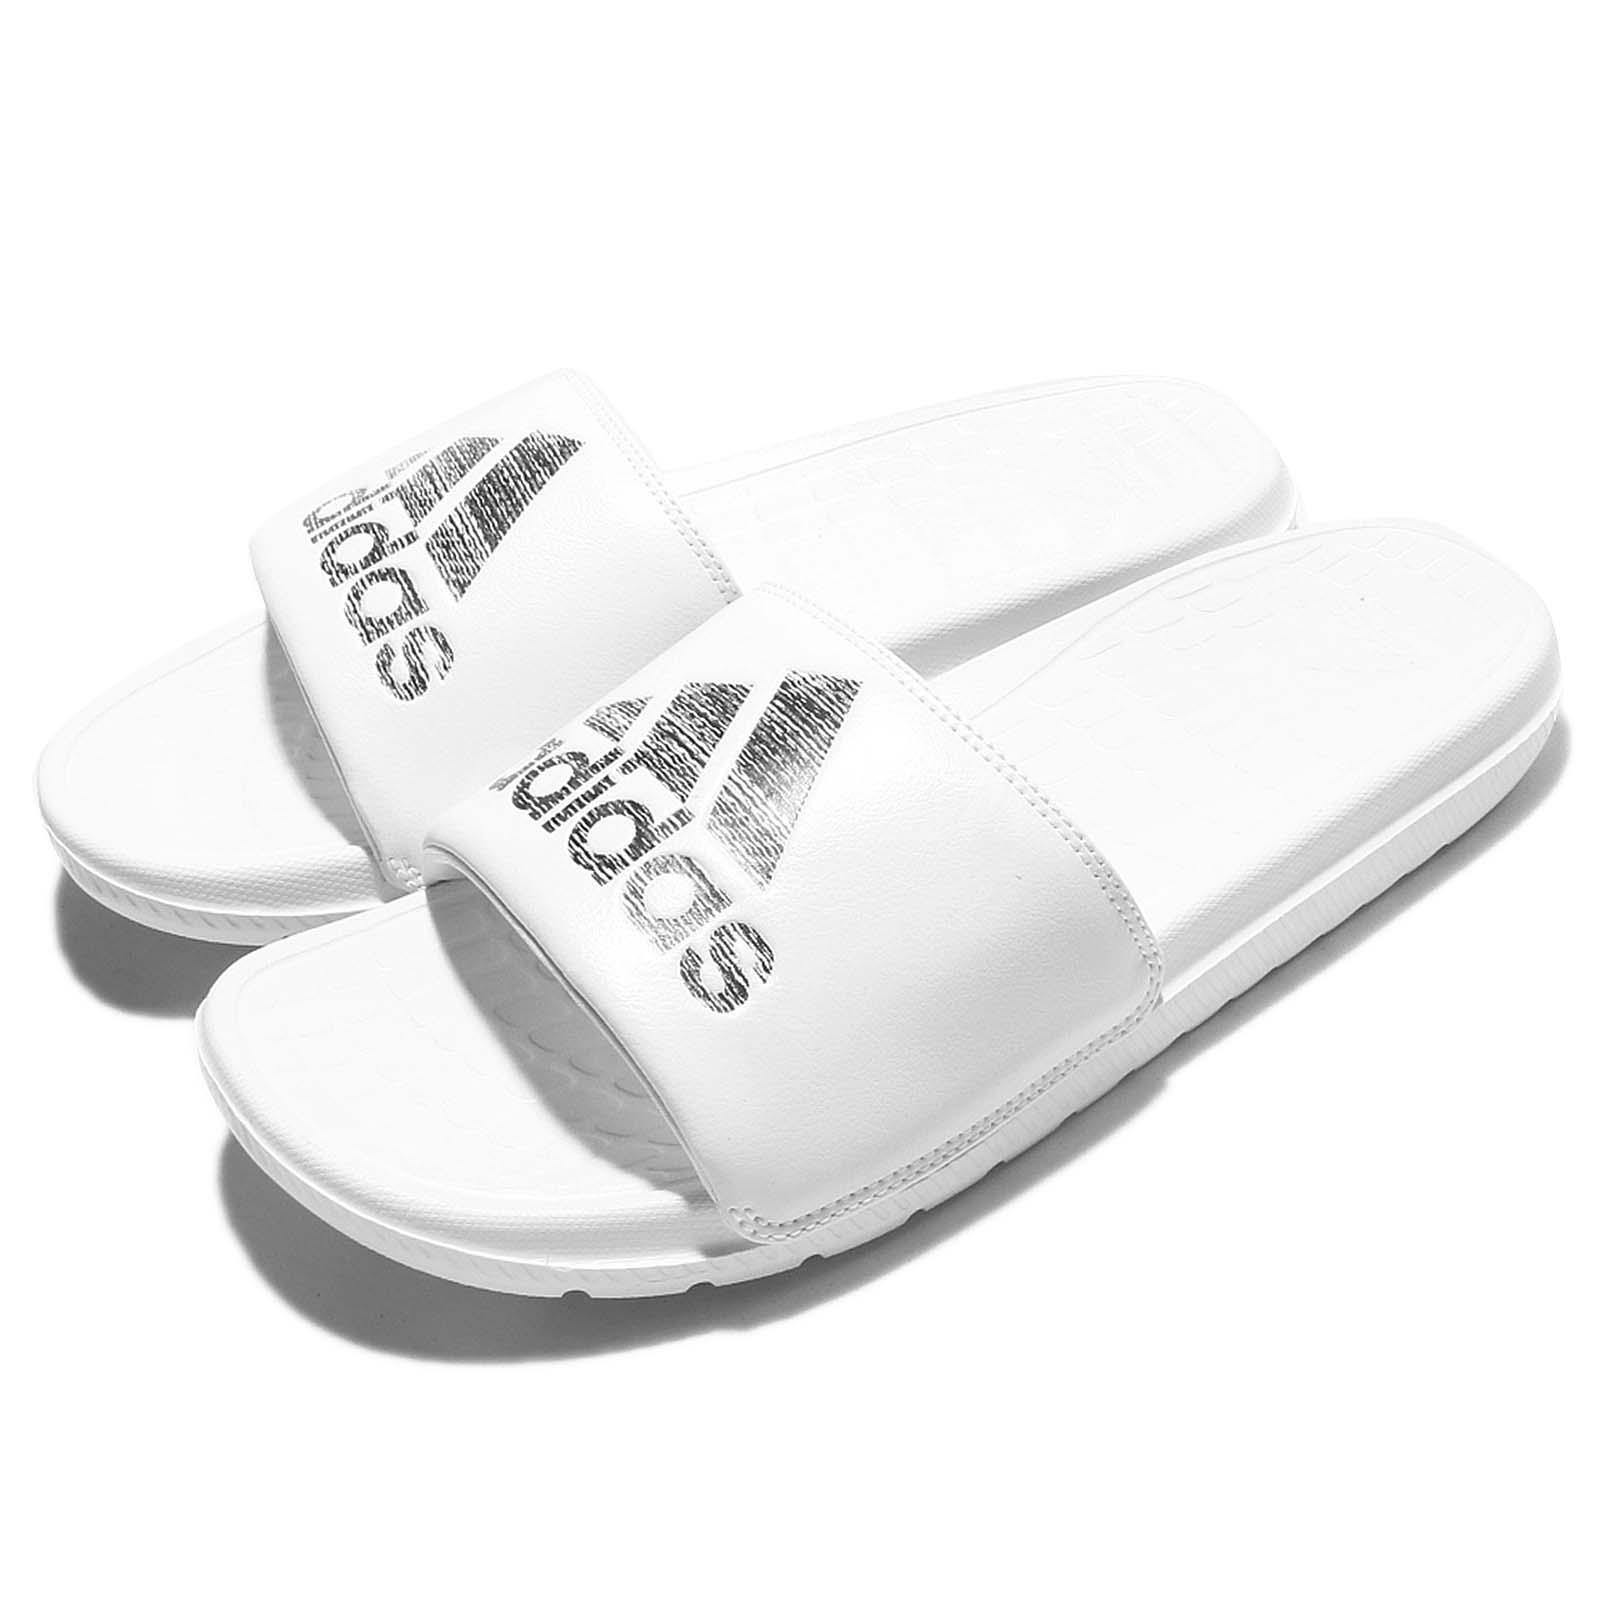 hot sale online e50e6 dae5e Details about adidas Voloomix White Black Men Sandal Slippers Slides S80406